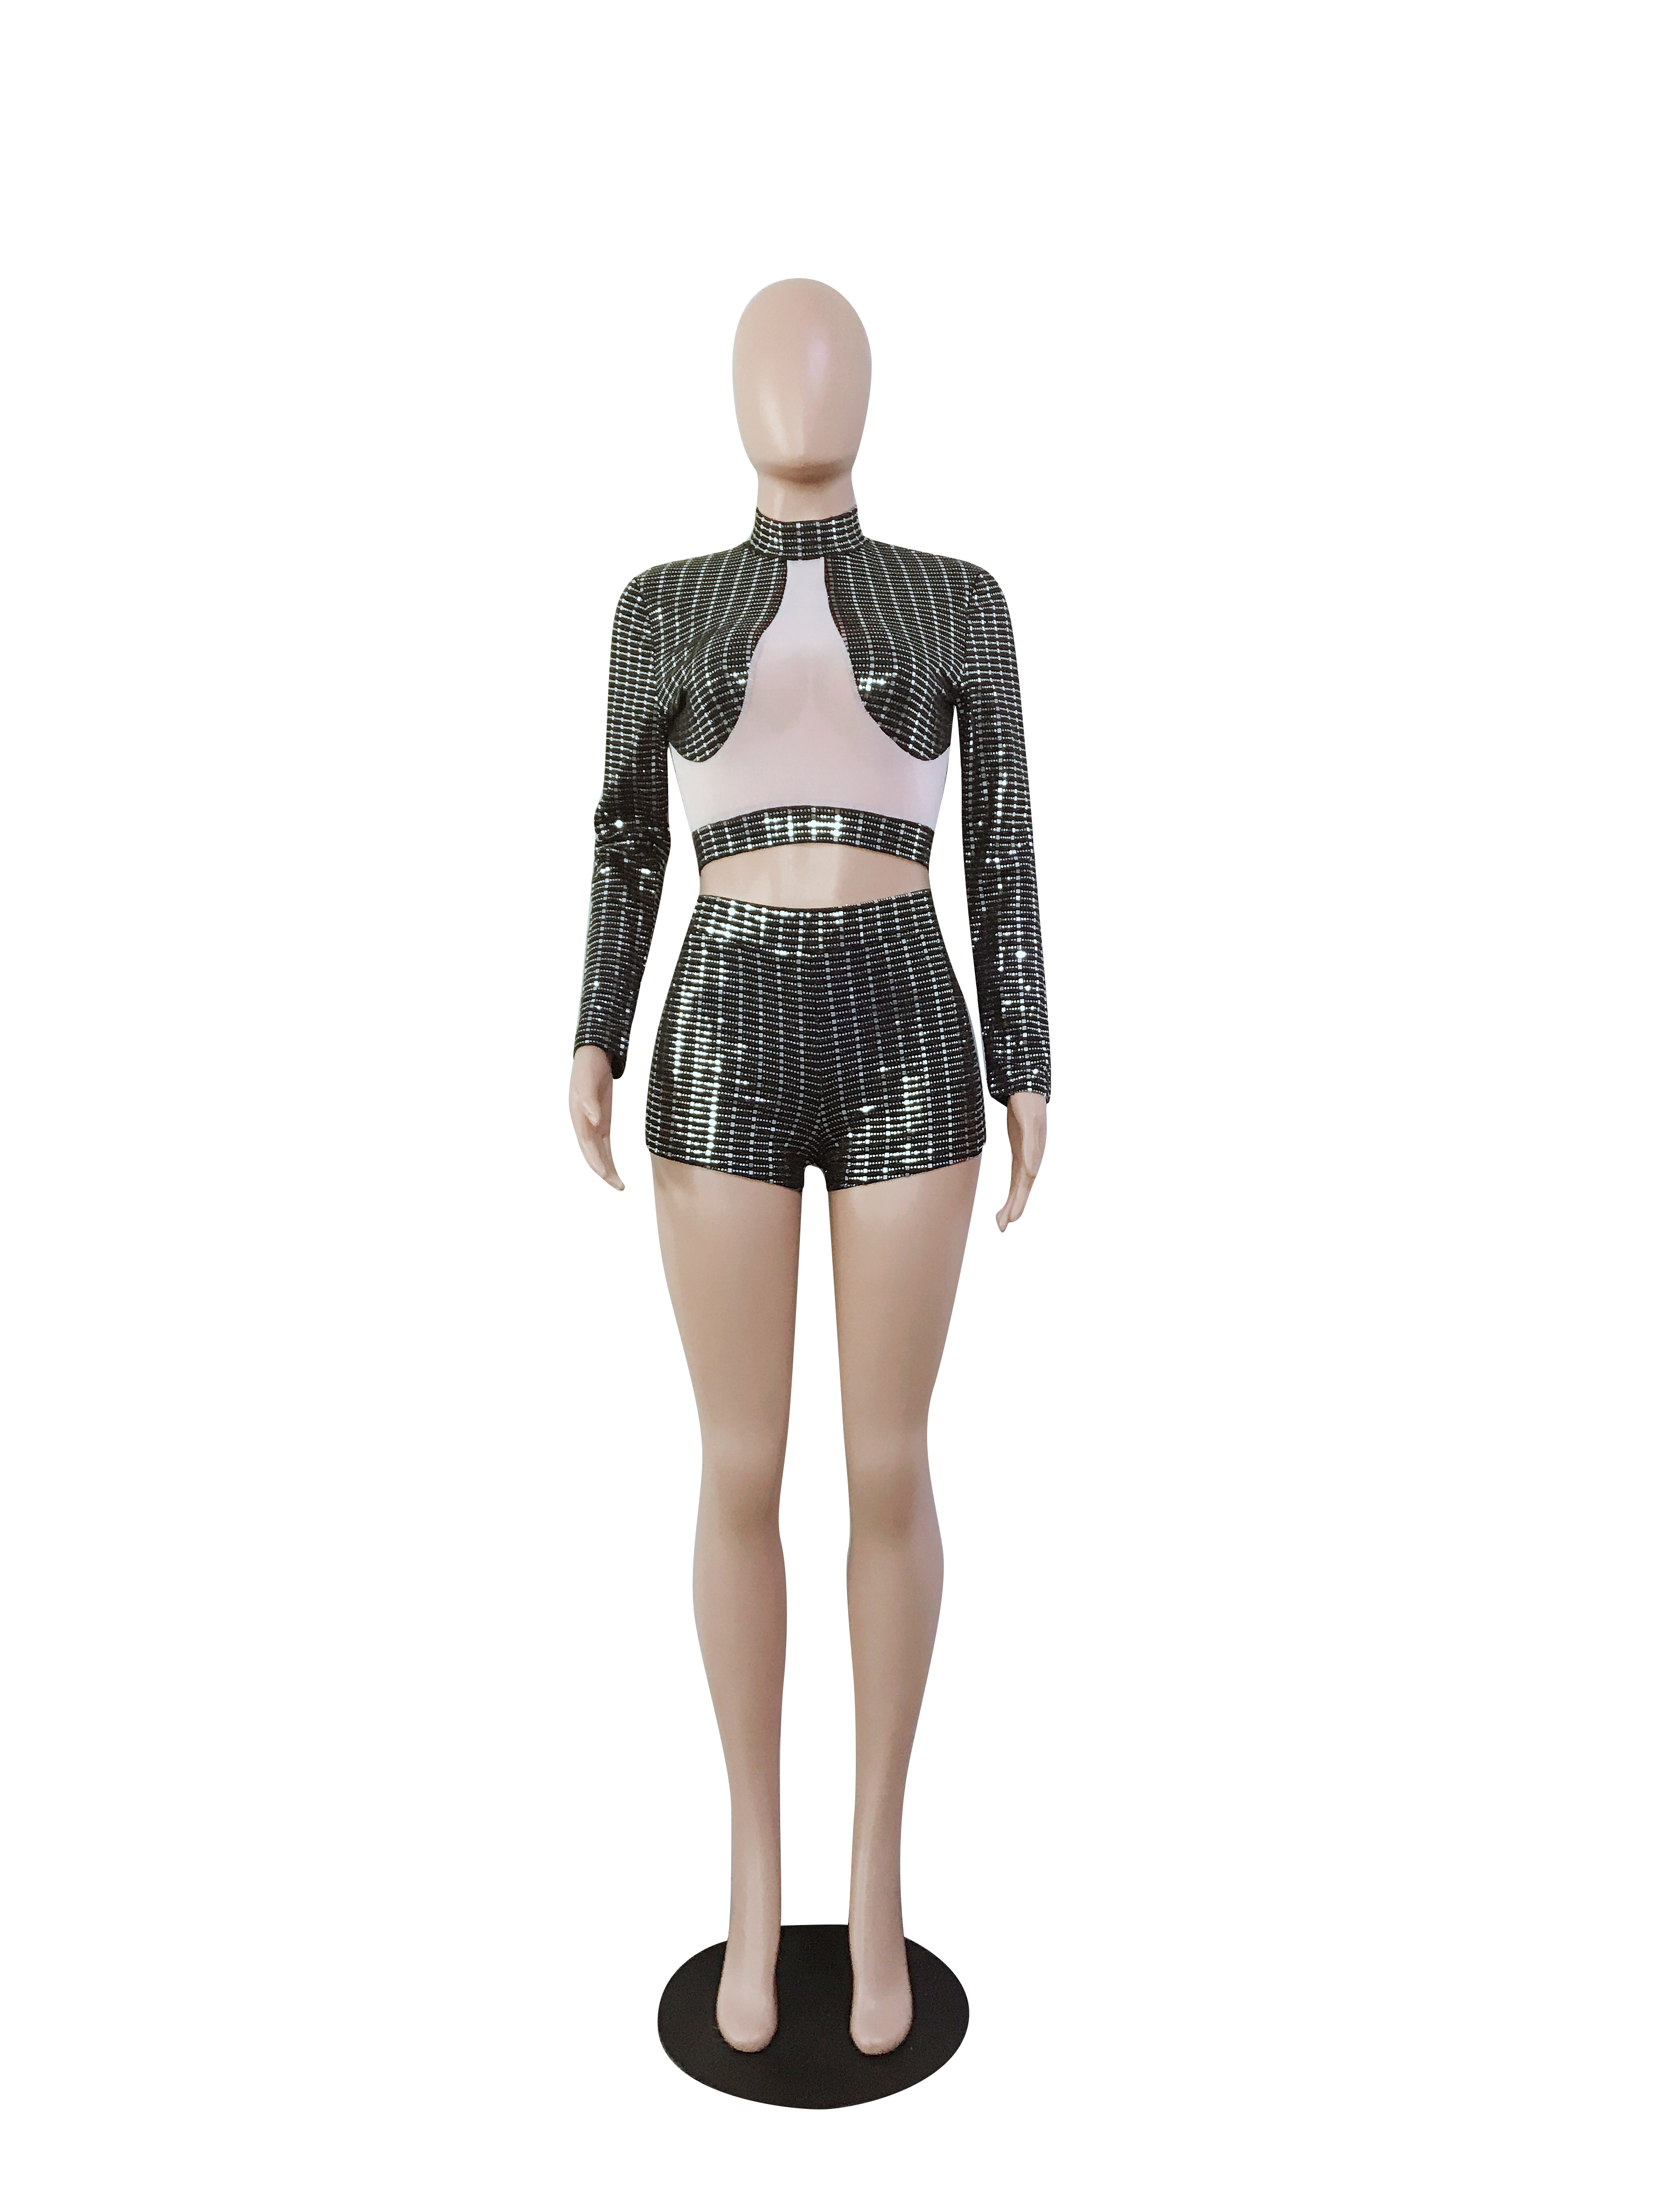 672811f8484fb US  10.86 - Sexy Shiny Crop Top and Shorts - www.global-lover.com